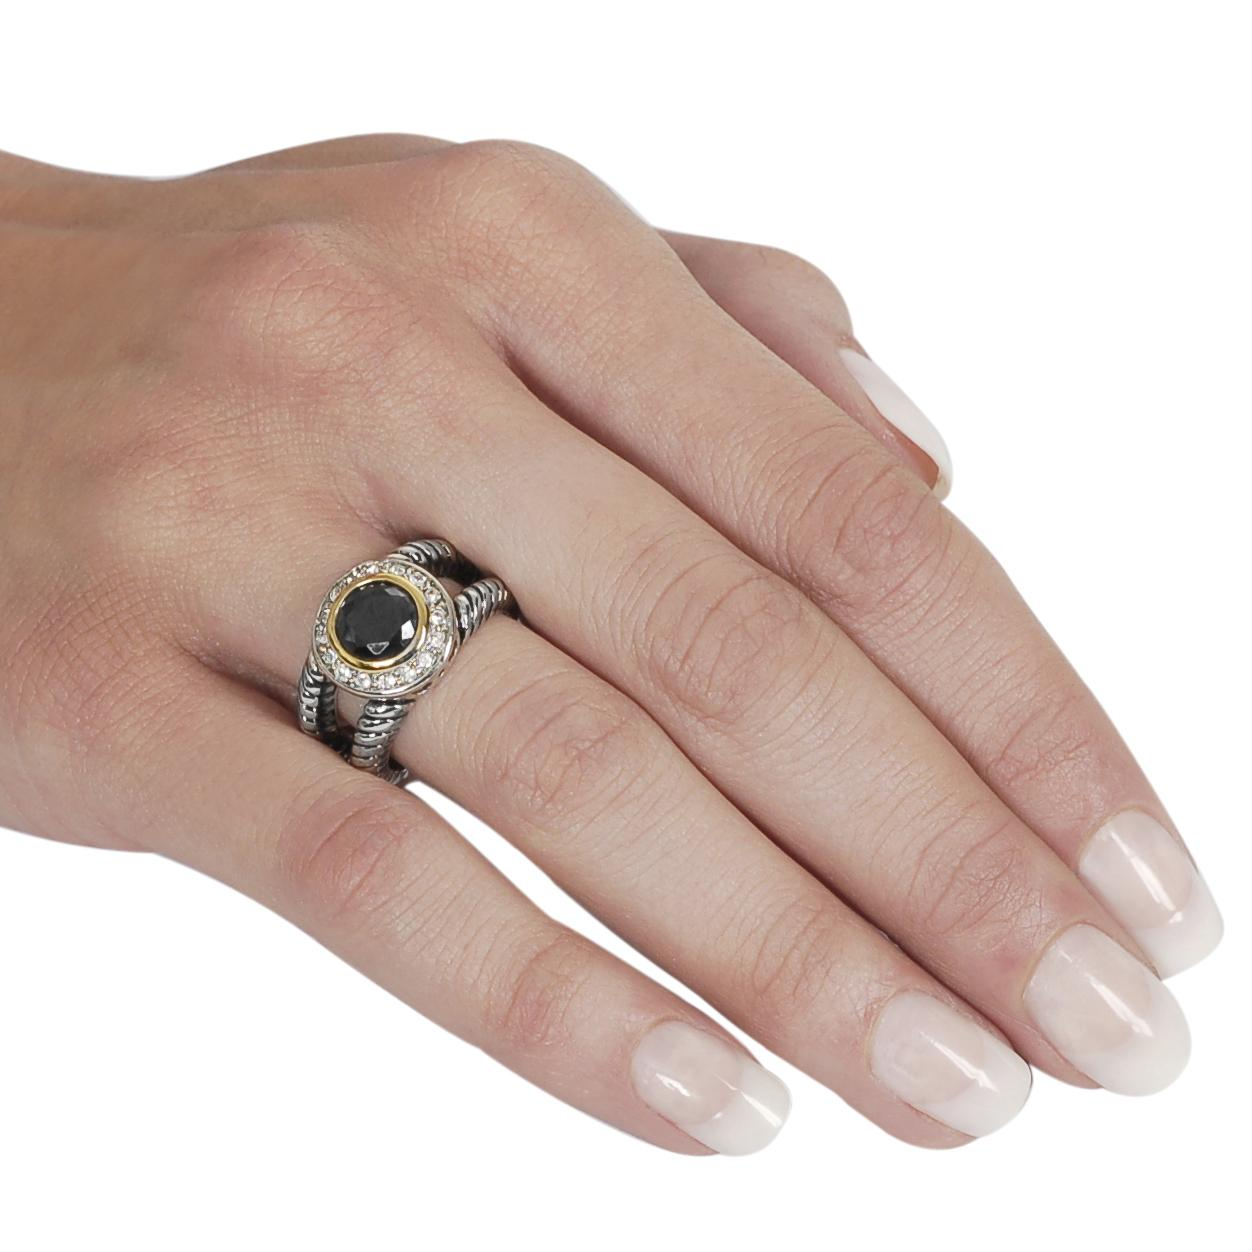 Journee Collection Two-tone Black and White CZ Twist Ring - Thumbnail 2